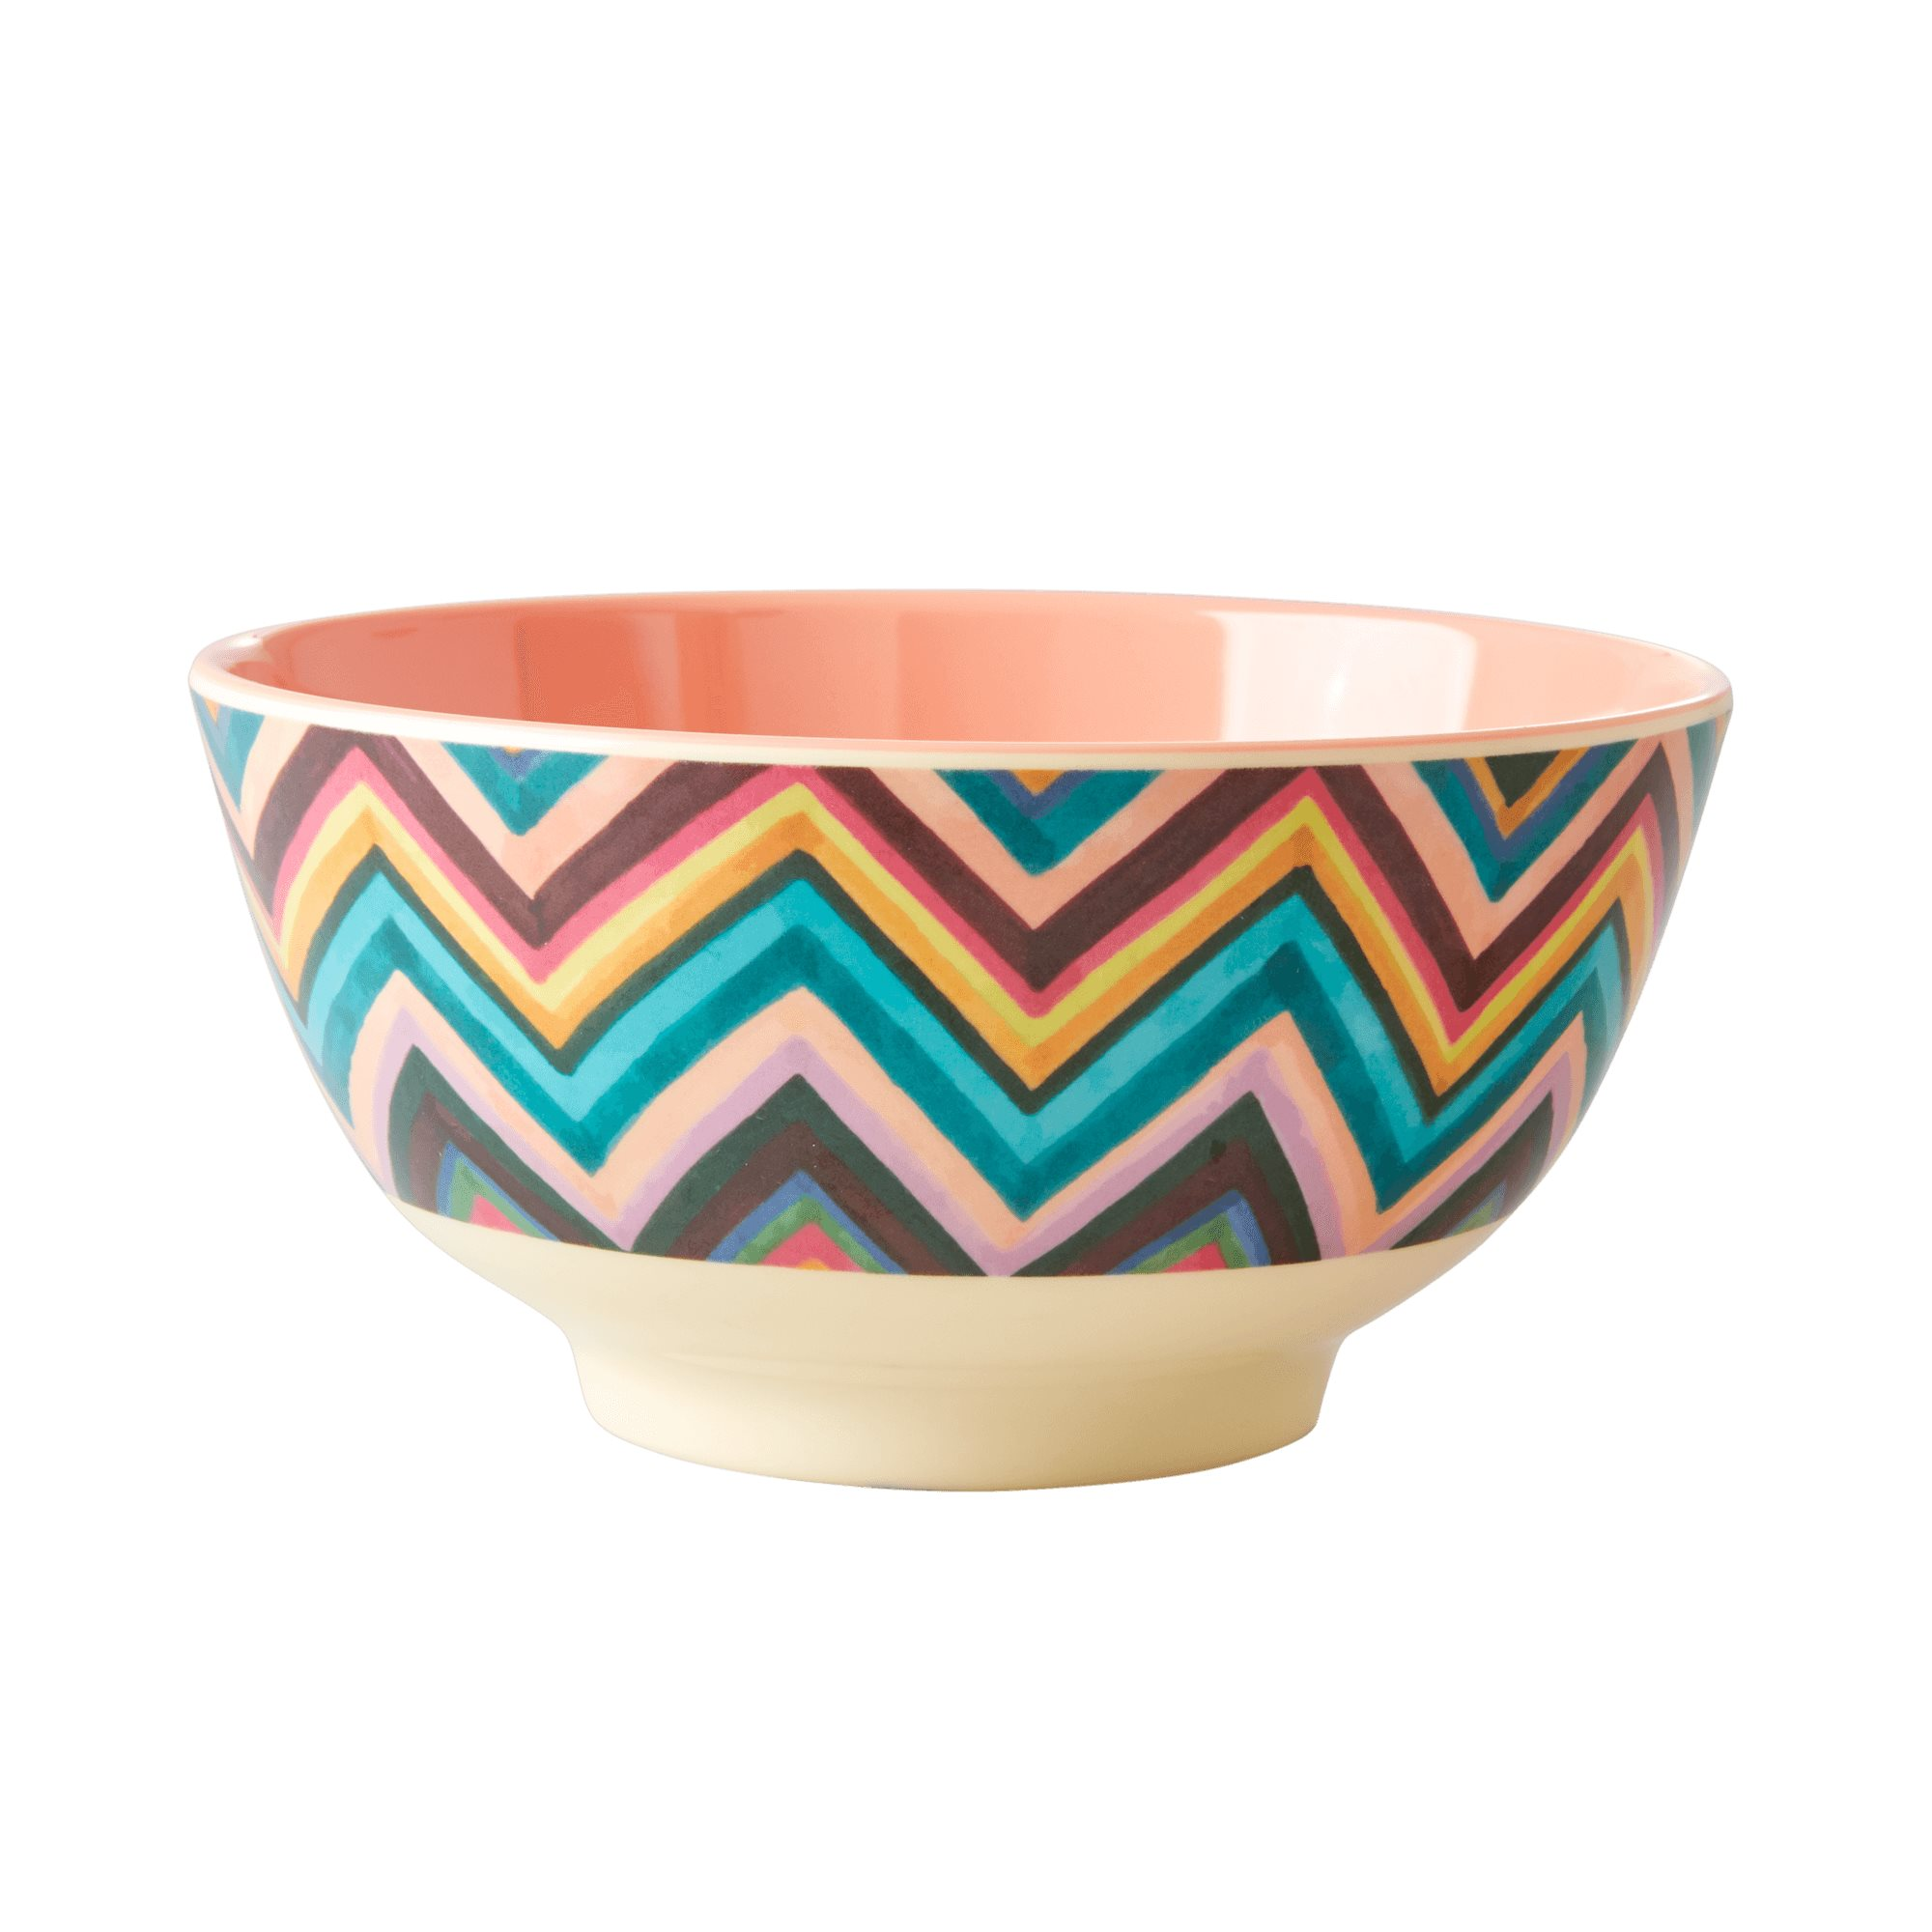 Medium Melamine Bowl - ZigZag Print - rice